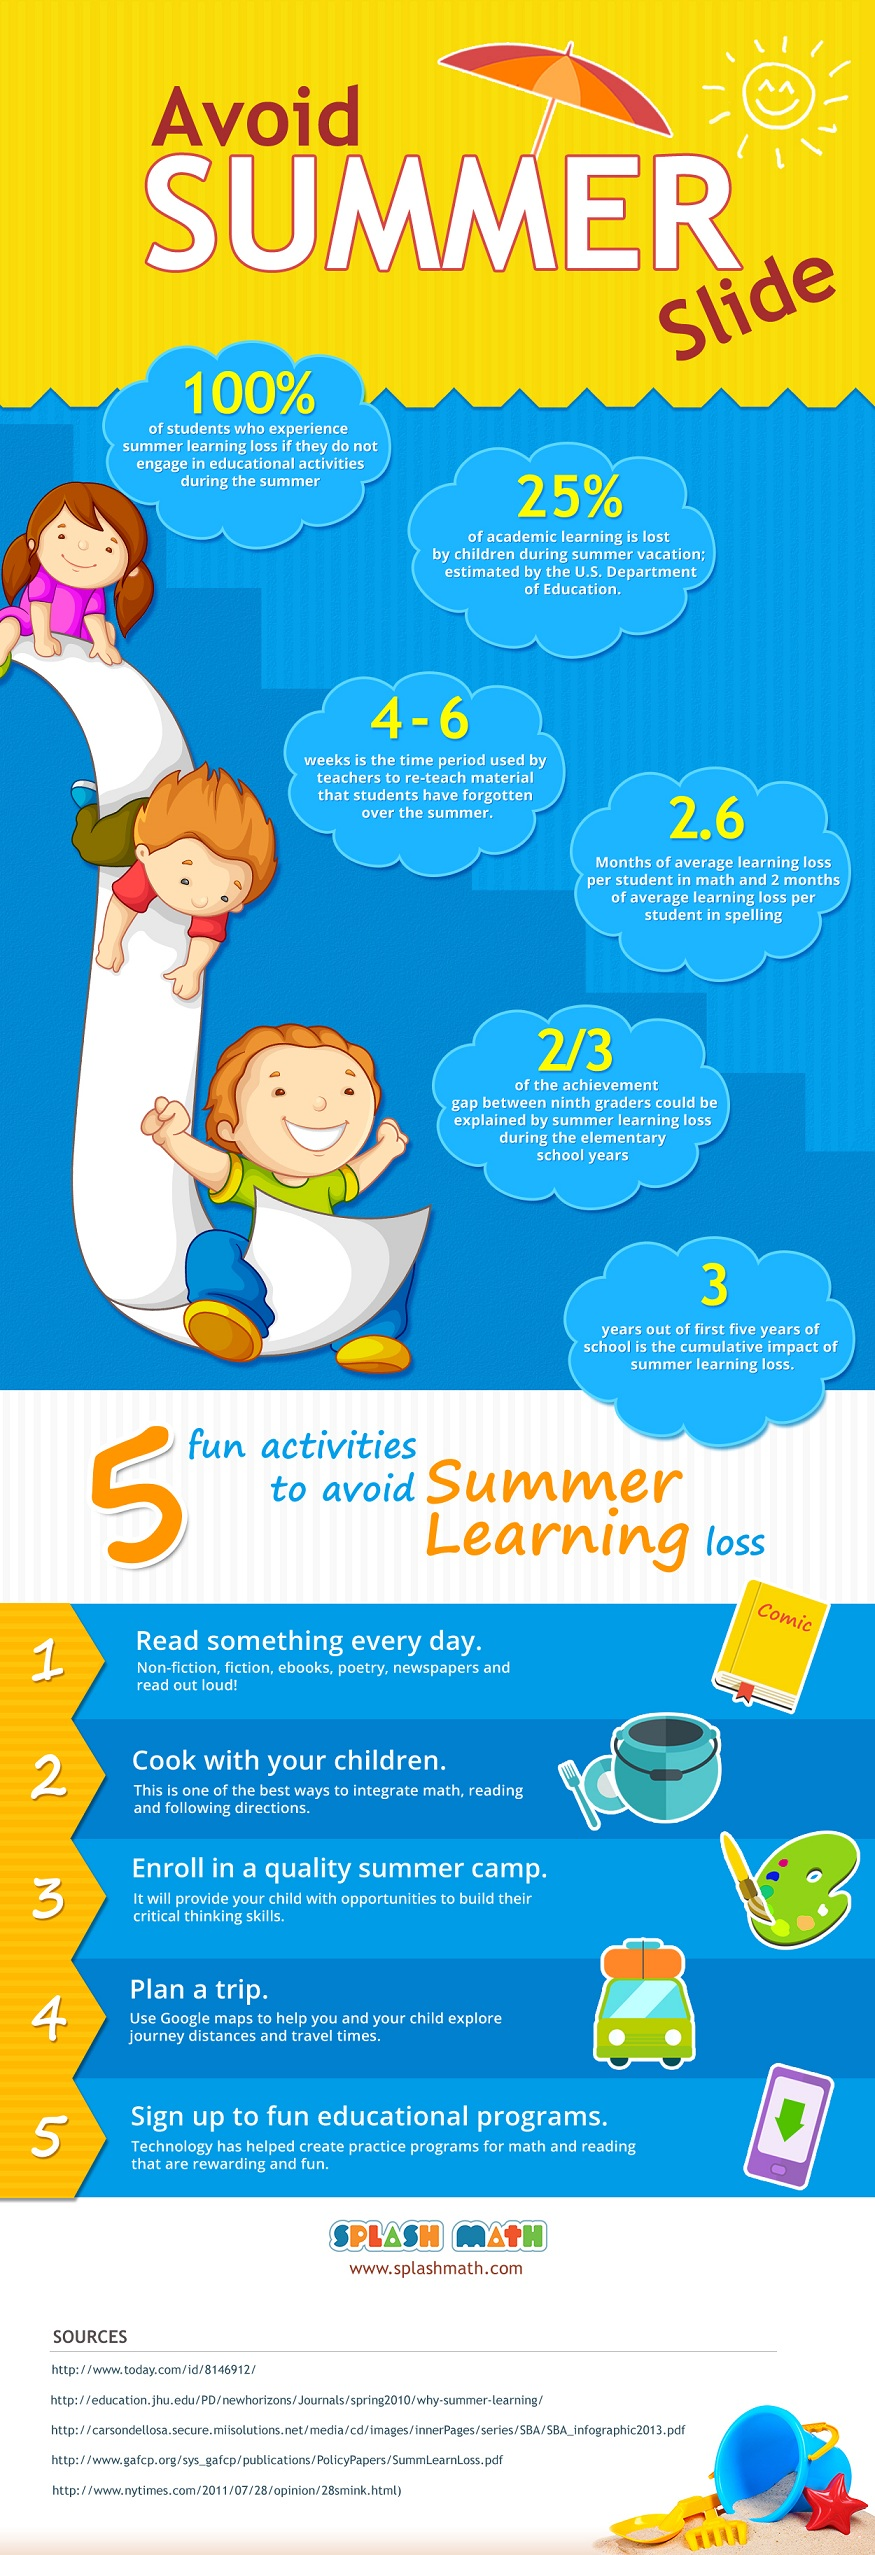 summer-slide-infographic-2015